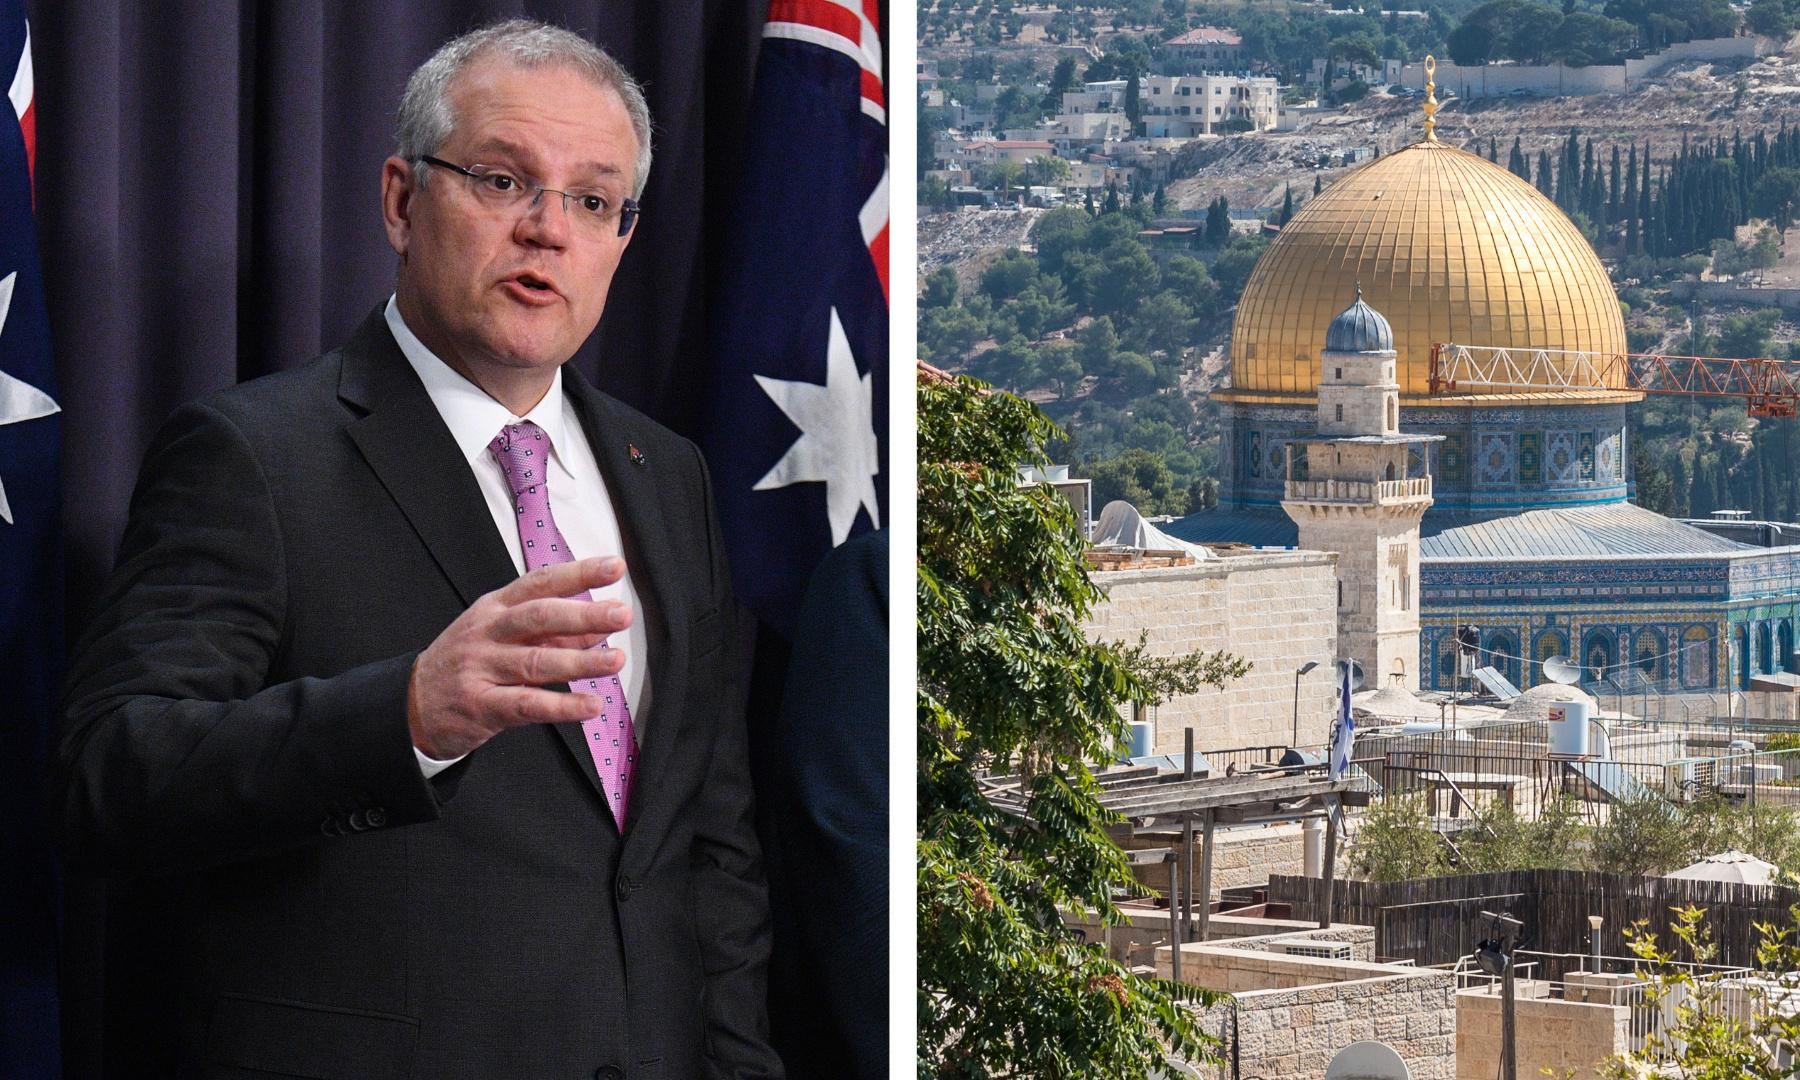 Palestinians call on Muslim states to target Australian exports over Jerusalem embassy